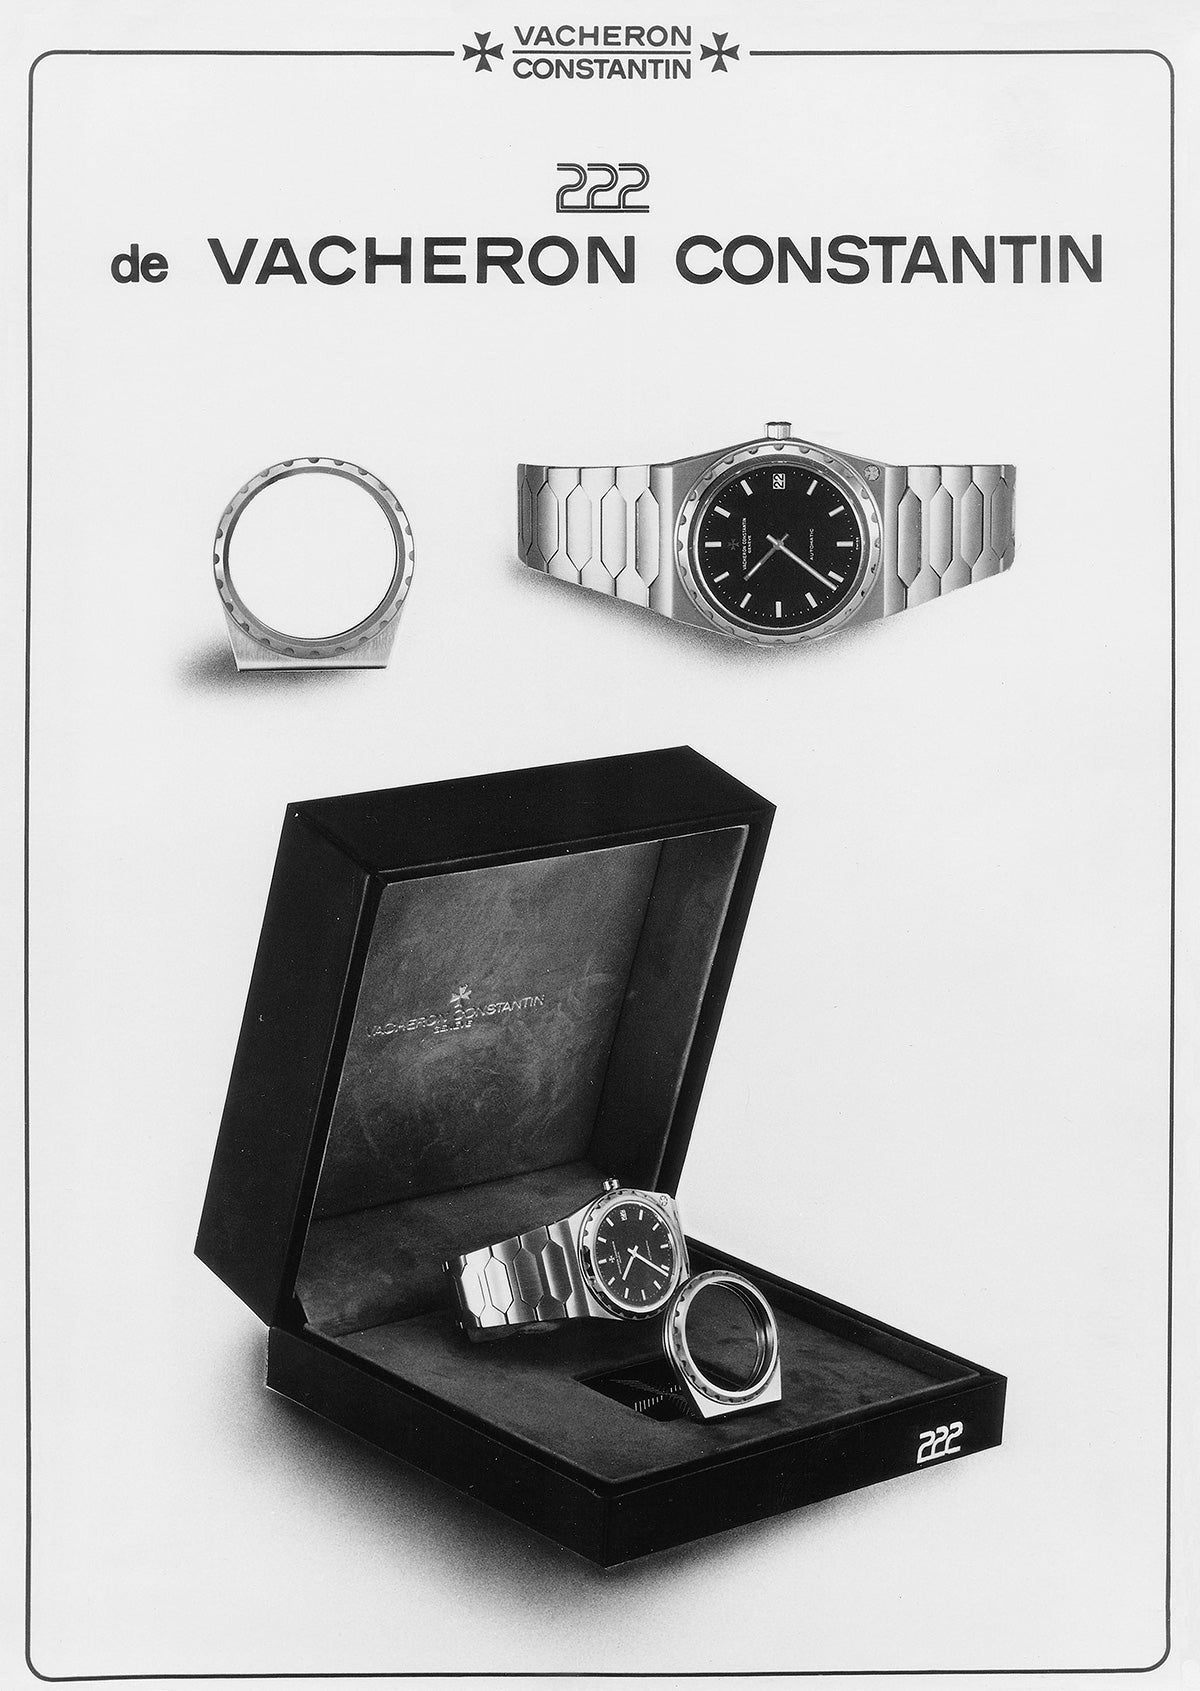 Vacheron Constantin 222 advert showing the original presentation box with bezel shaped money clip for A Collected Man London